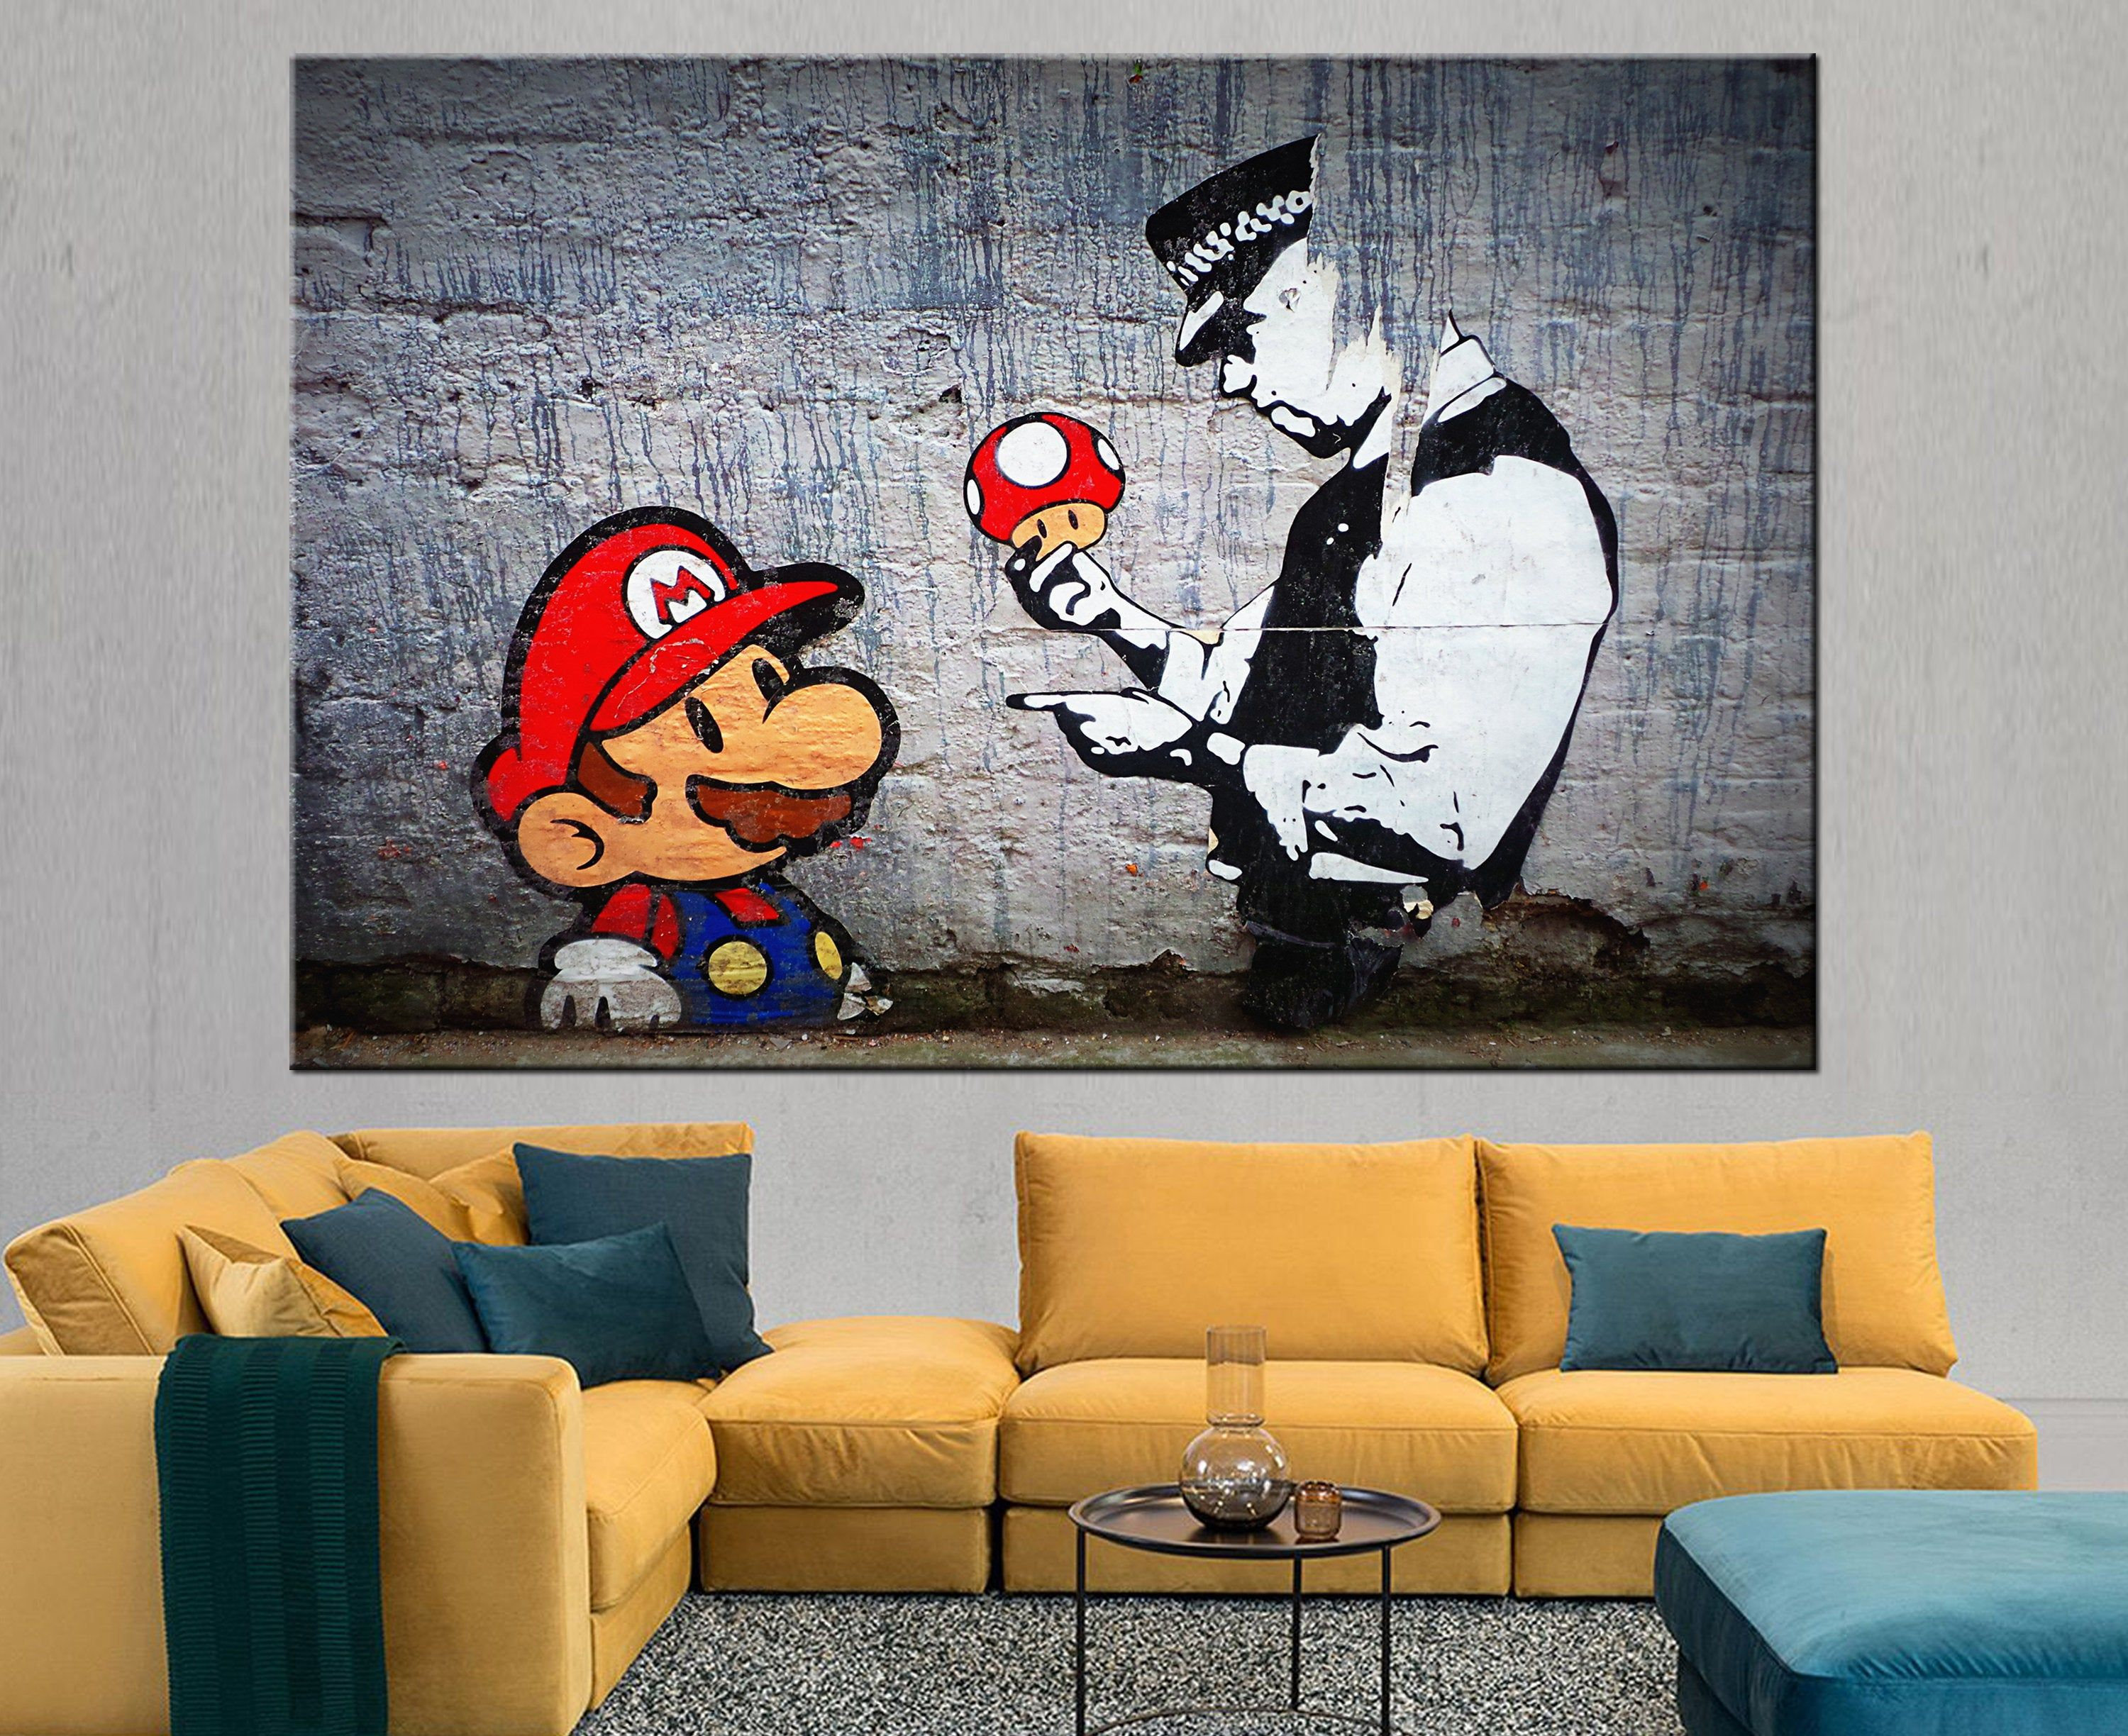 Banksy Super Mario Canvas Banksy Mario Bros Wall Art Banksy Etsy Custom Canvas Art Urban Wall Art Canvas Prints